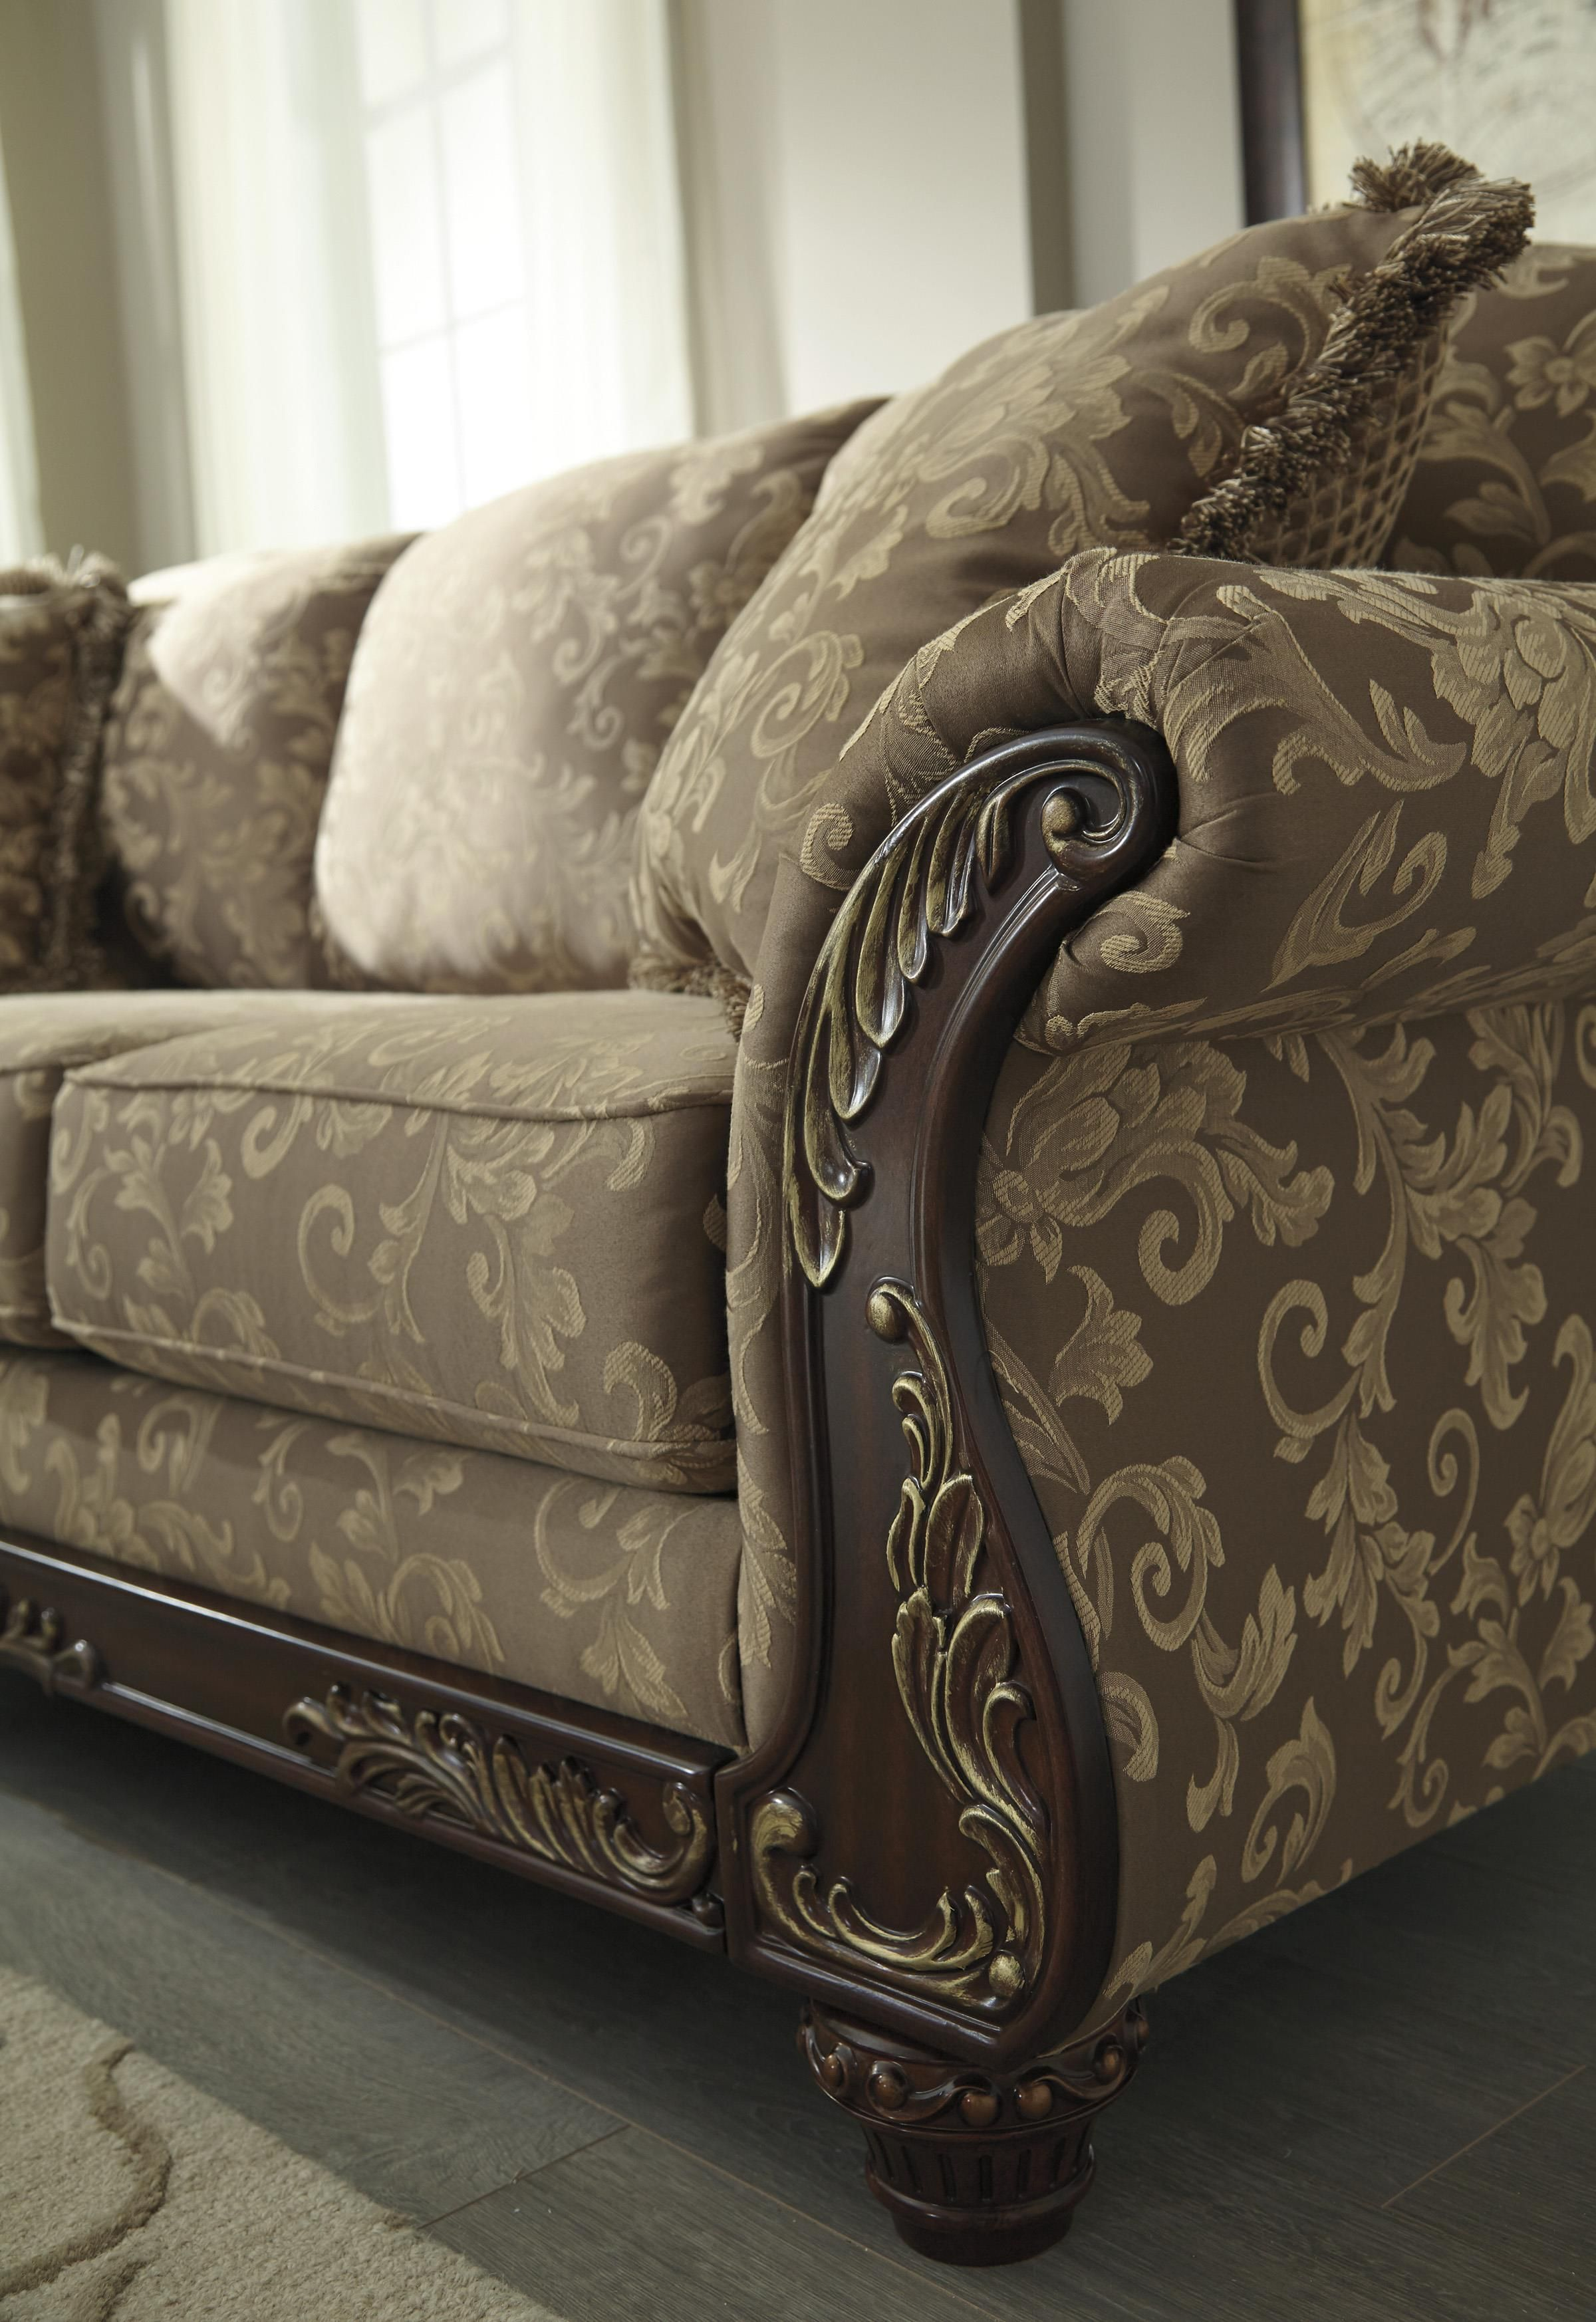 Groovy Pin By Samar On Chairs Sofa Furniture Sofa Design Gmtry Best Dining Table And Chair Ideas Images Gmtryco